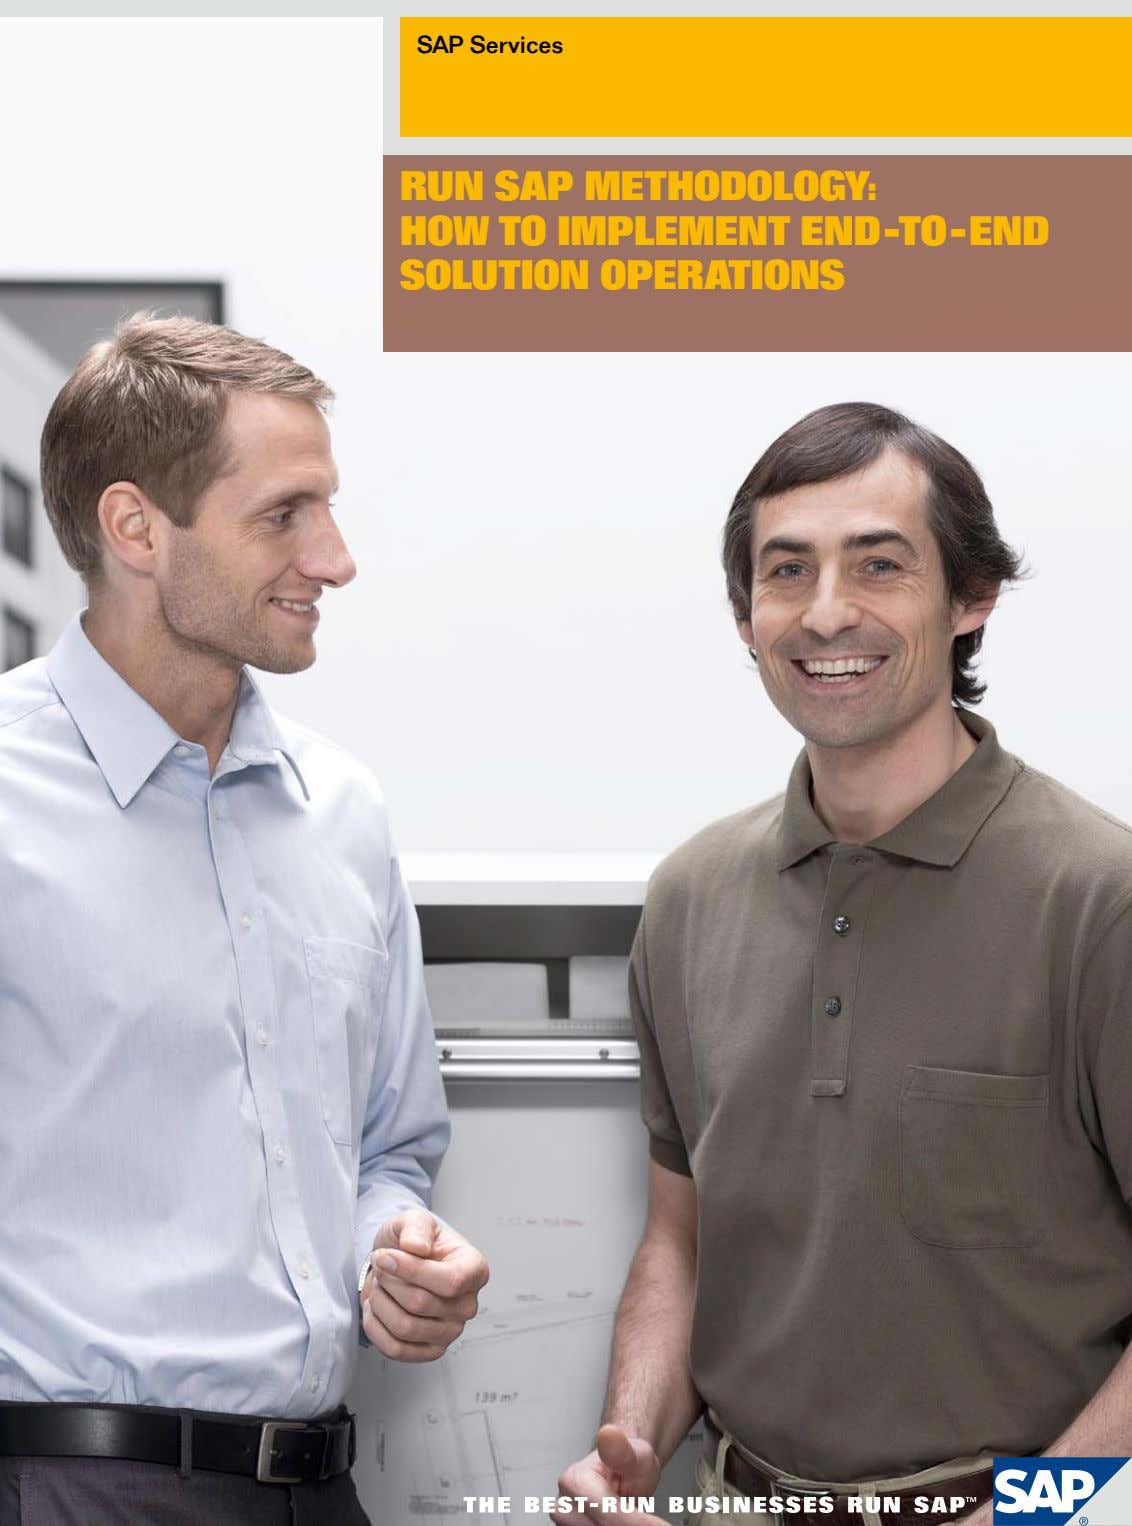 SAP Services Run SAP Methodology: how to IMPleMent end-to-end SolutIon oPeRAtIonS